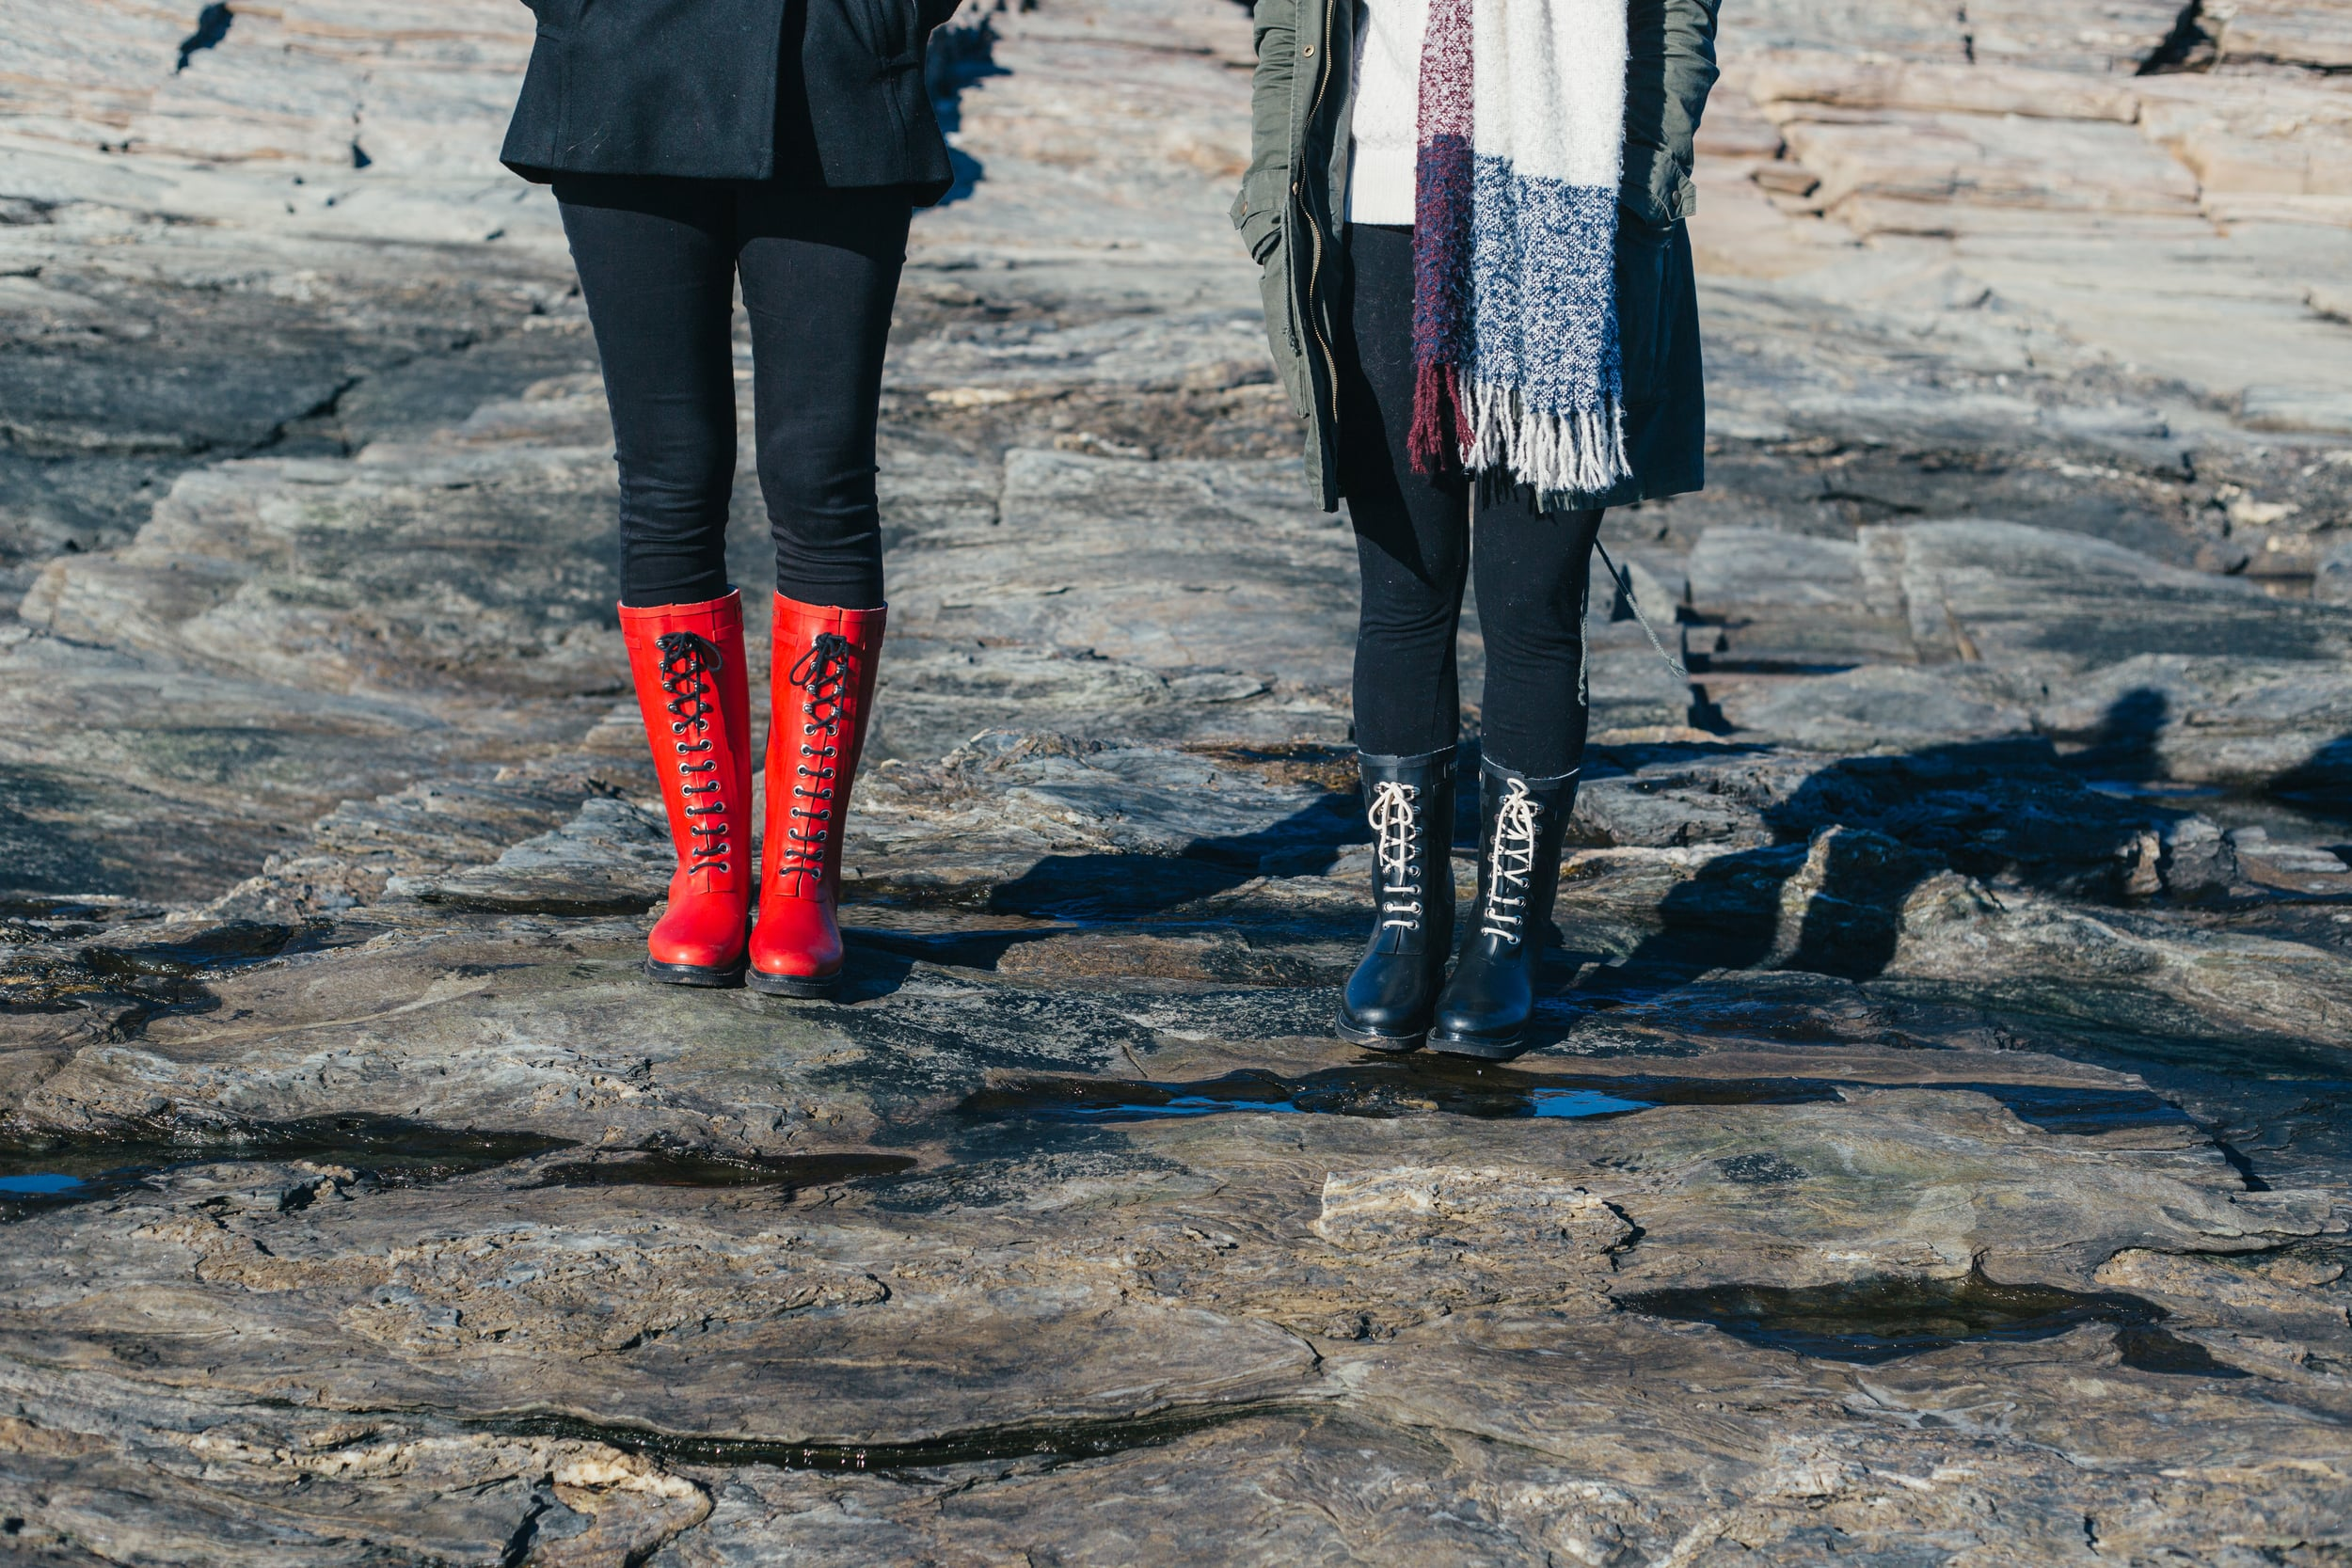 Gretchen (left) is wearng the Rub 01 boots, the tallest style they carry. I am wearing the medium-height Rub 15 black boots.